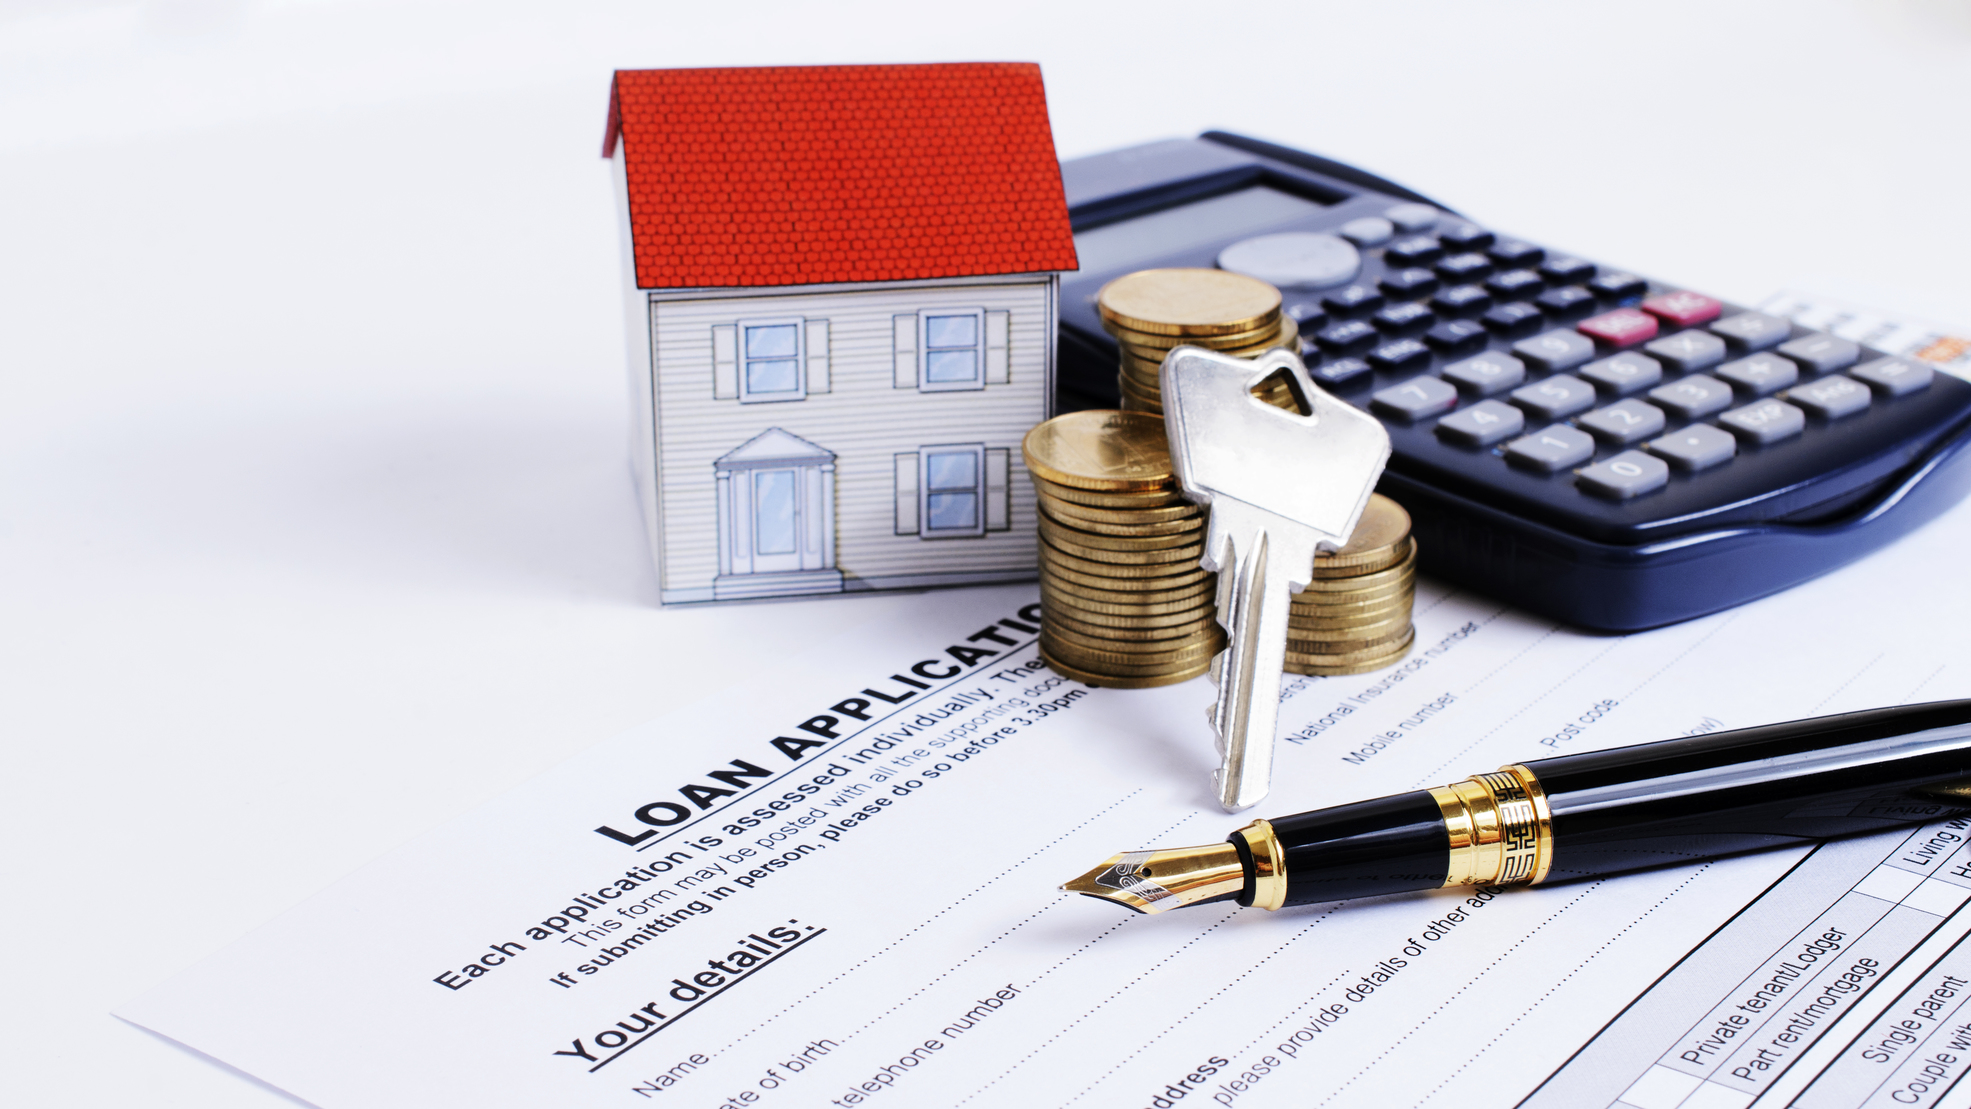 Special Doctor Home Loans: Features to Consider and Compare